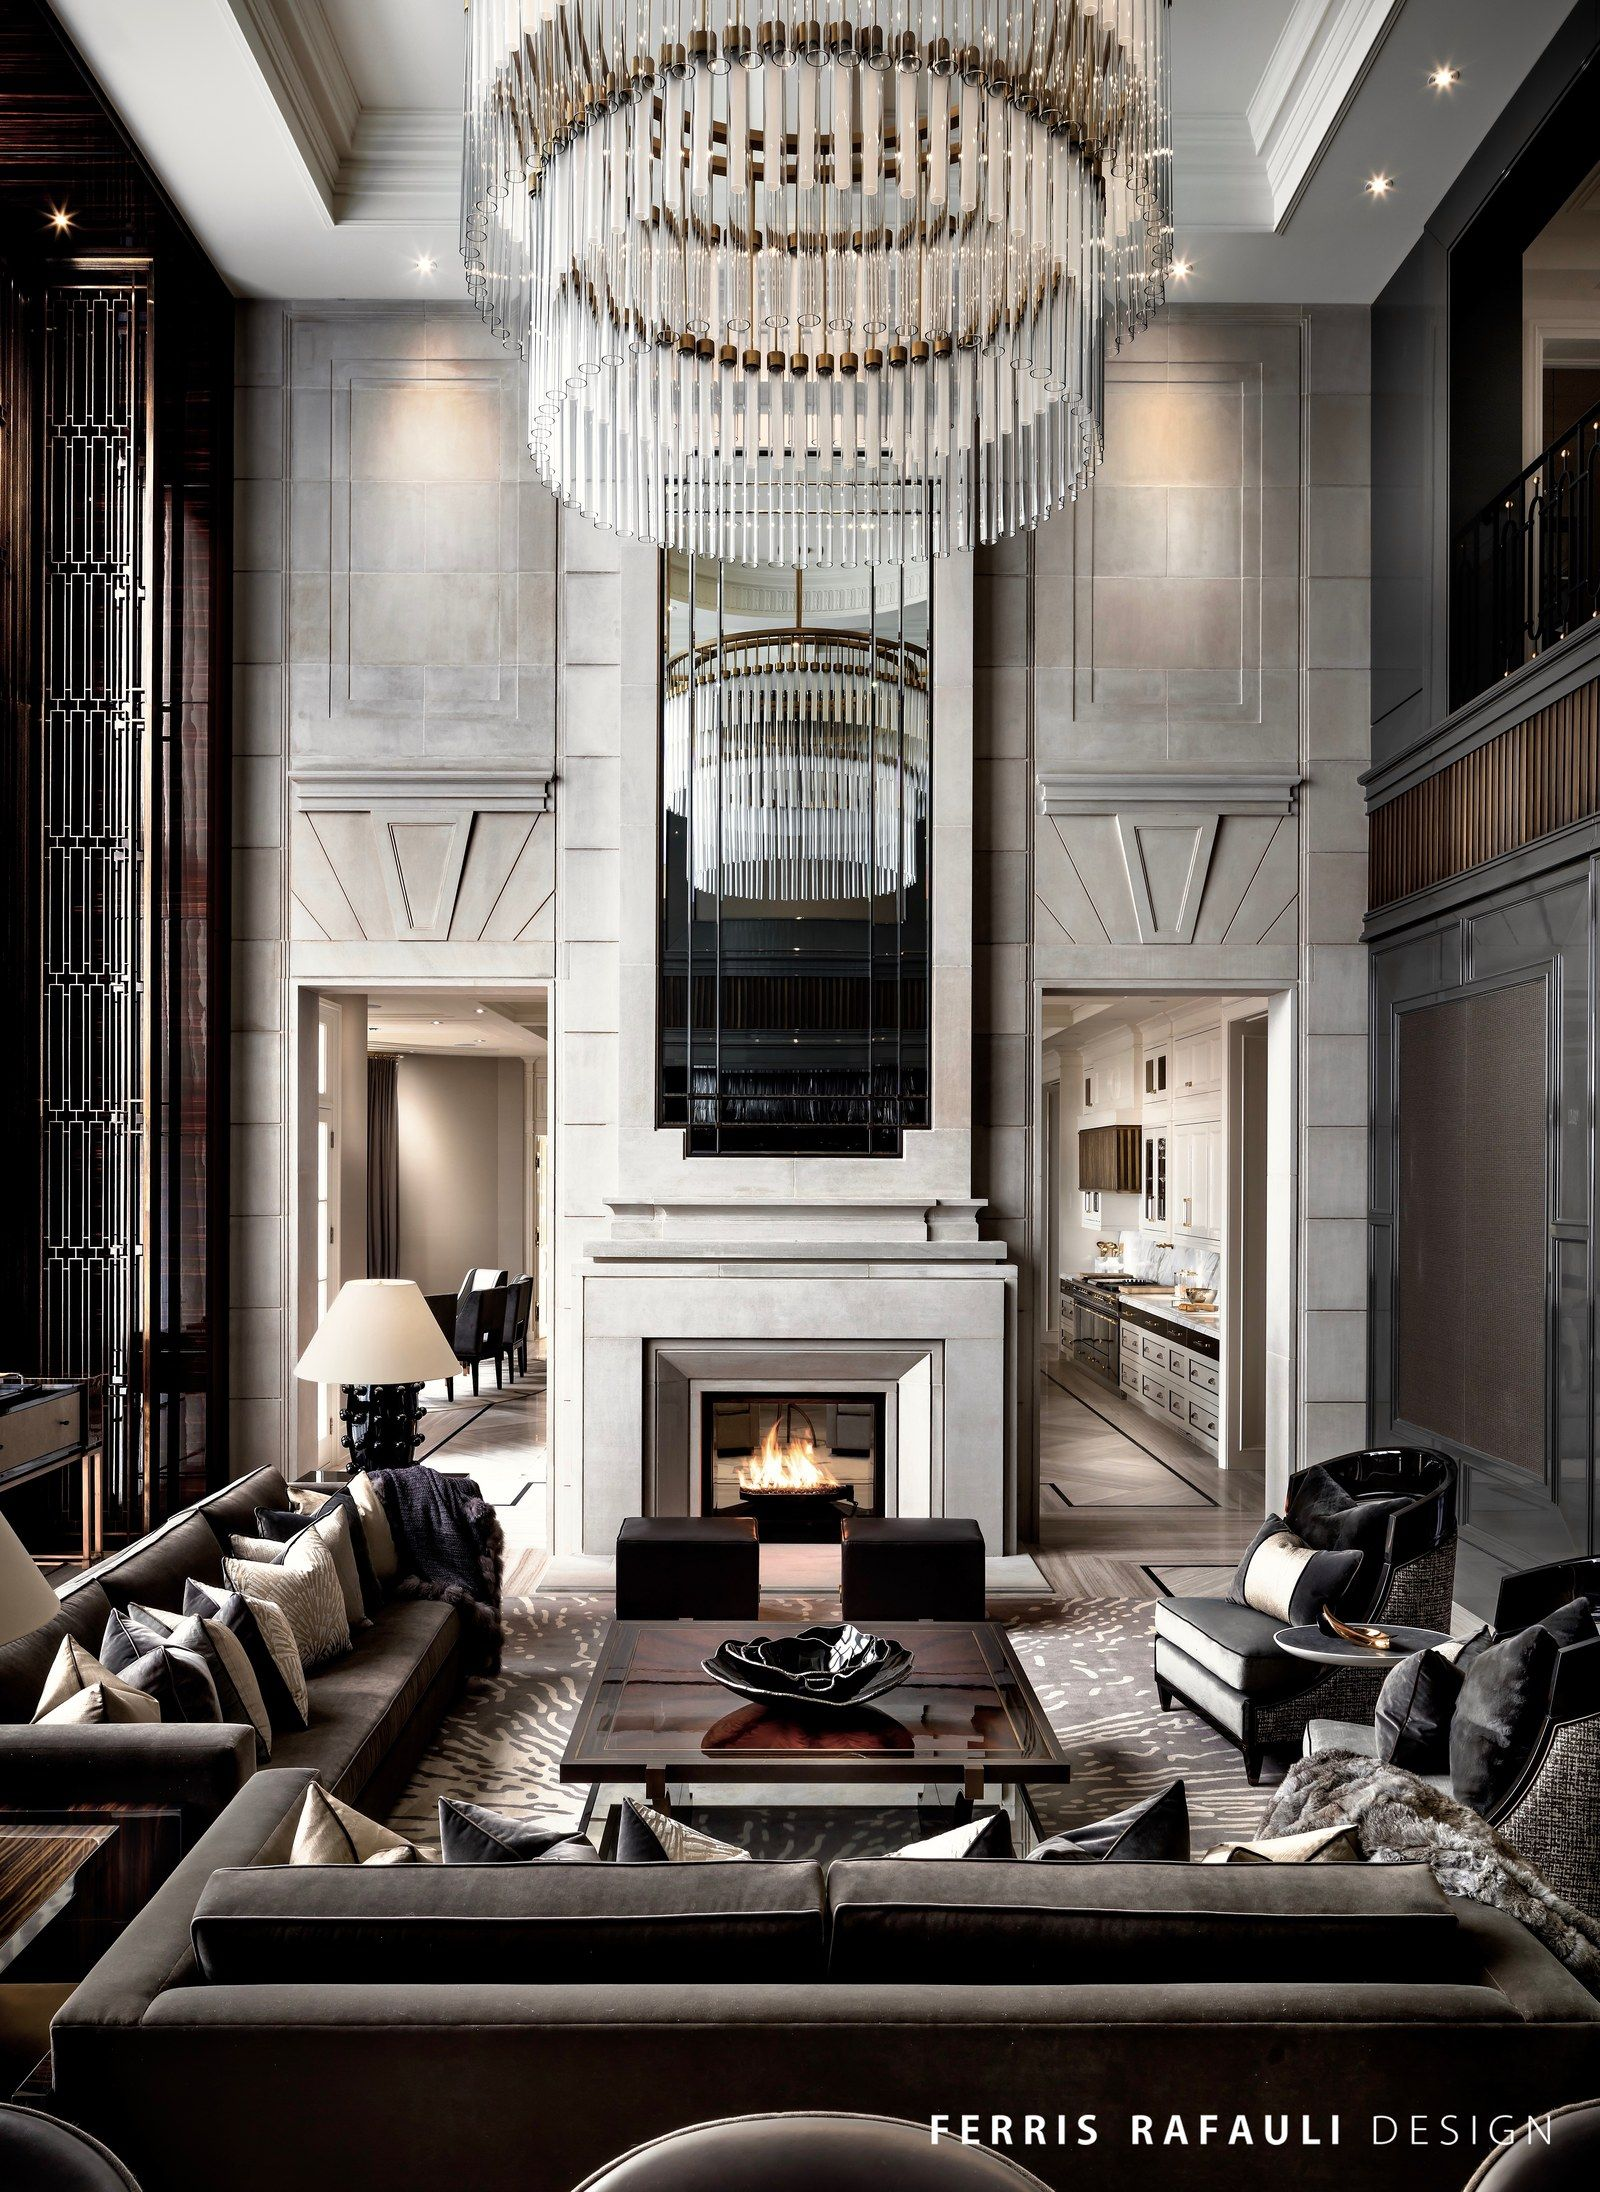 Ferris Rafauli specializes in integrating ultra luxury interior